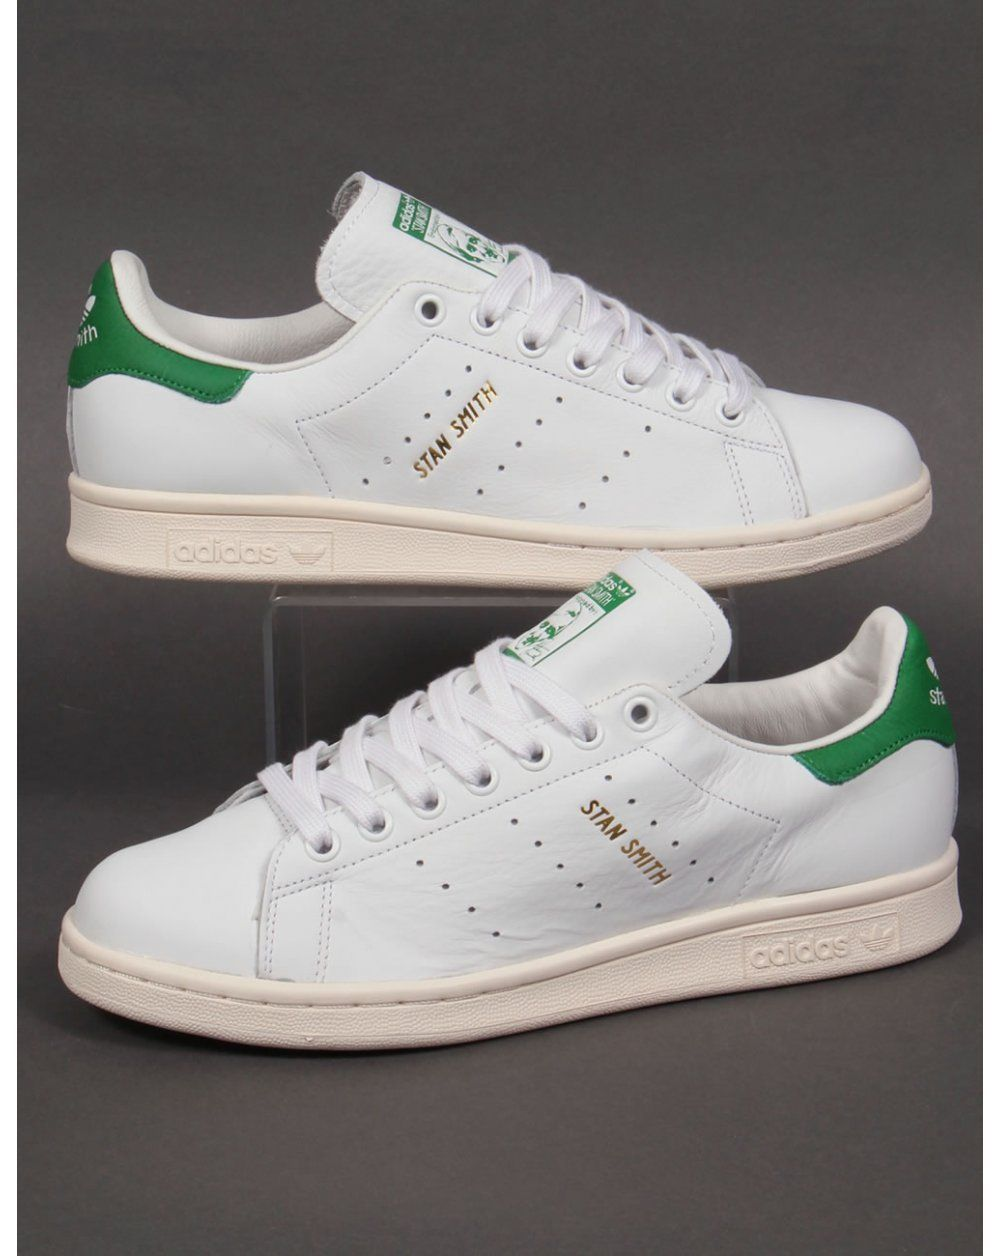 Adidas Originals Stan Smith Trainers in White   Green (Gold Print) (UK  Sizes) in Clothes 5bfe55cec